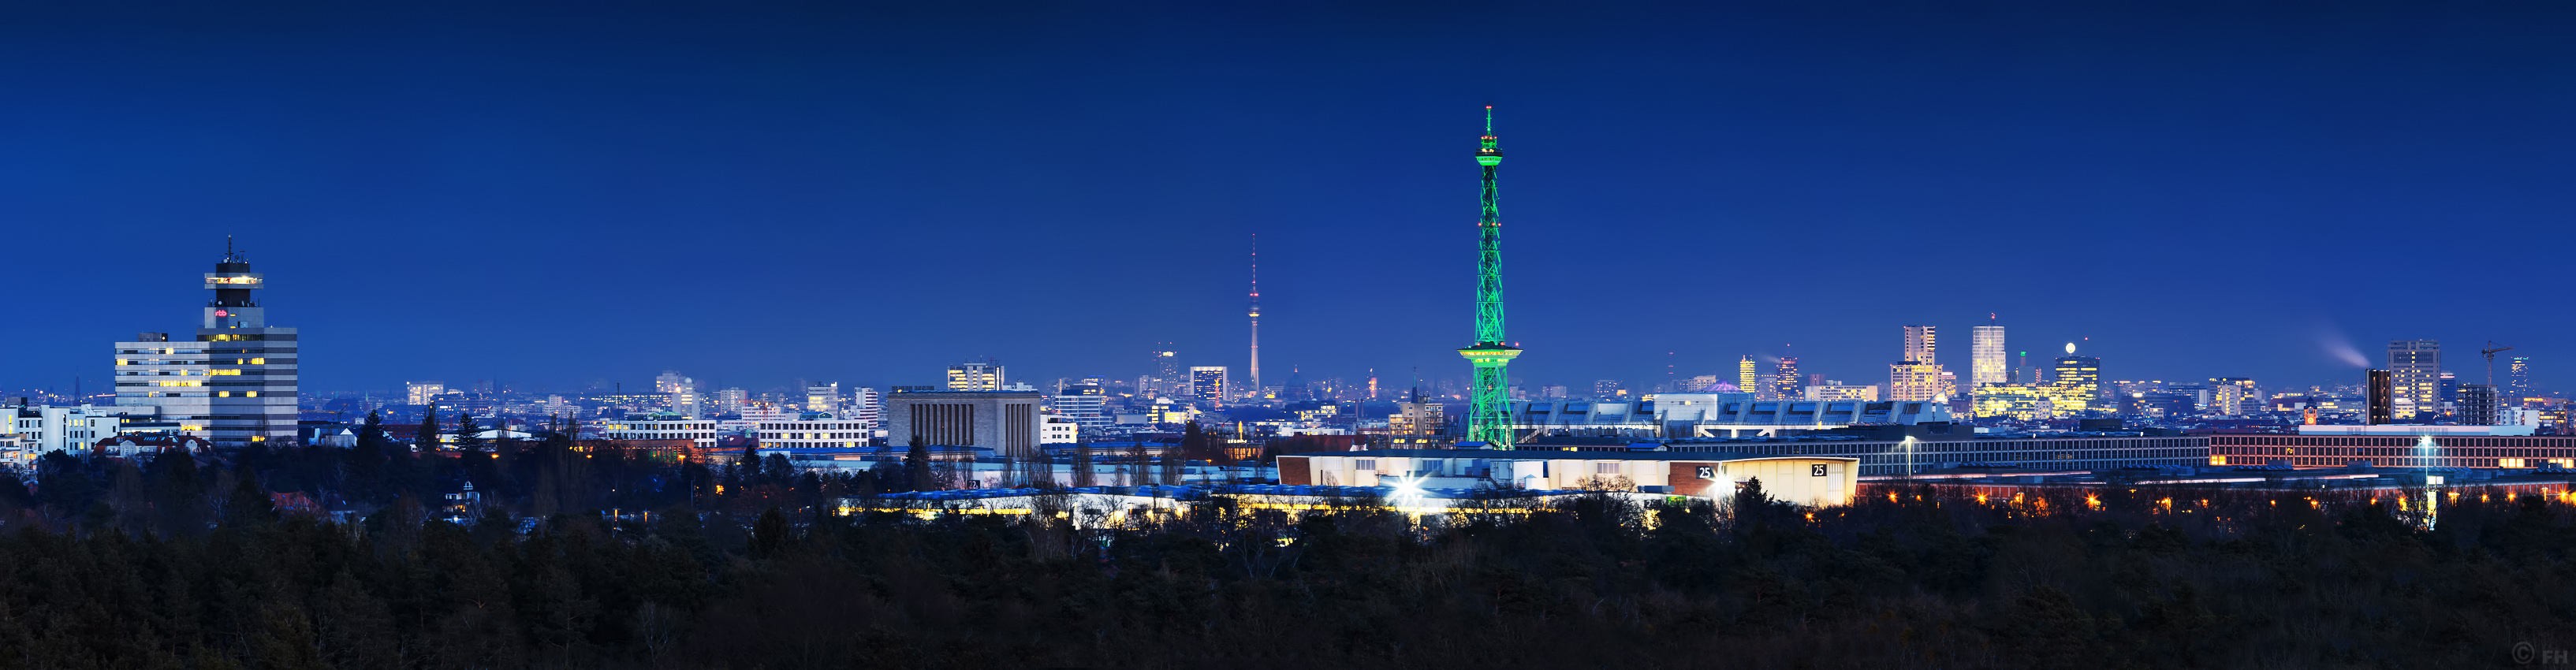 Berlin_Skyline_Green_1_k